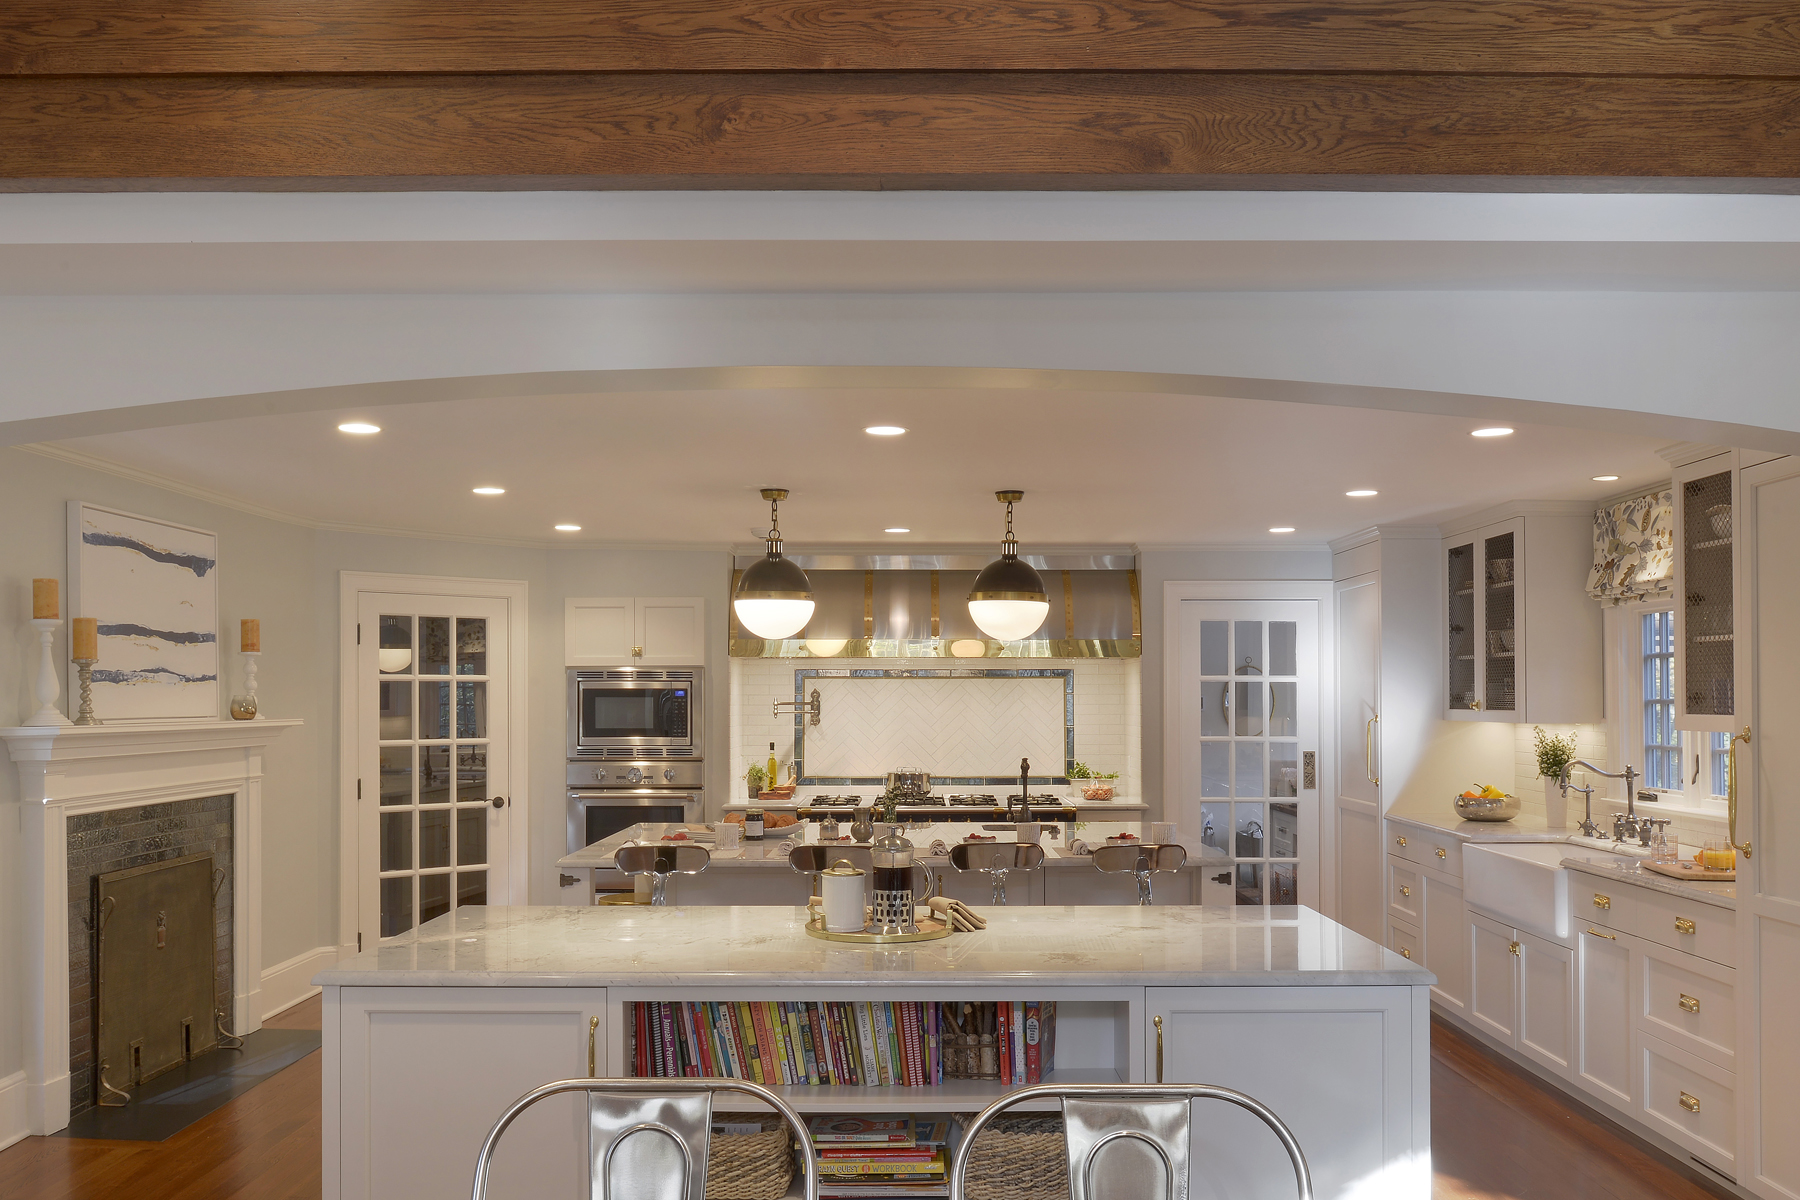 L-shaped traditional kitchen features white painted fully custom Bilotta cabinets, marble counters, double islands, fireplace, and large range area with decorative backsplash as a focal point. Designed by Randy O'Kane, CKD of Bilotta Kitchens.